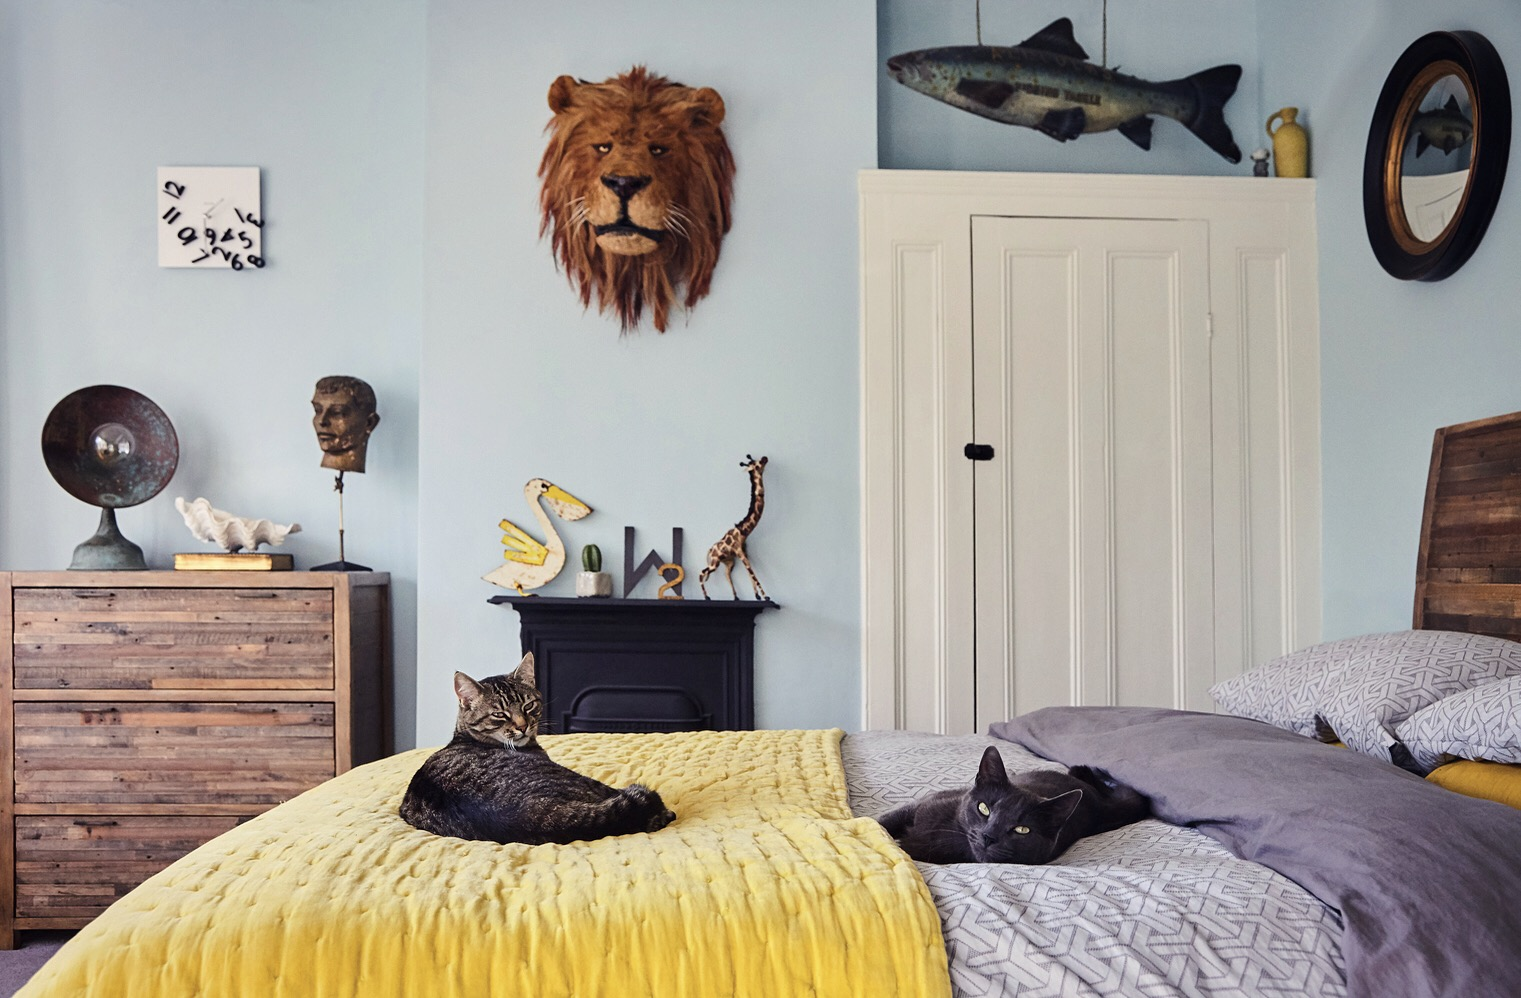 Top 10 Quirky Homes As Seen On Instagram